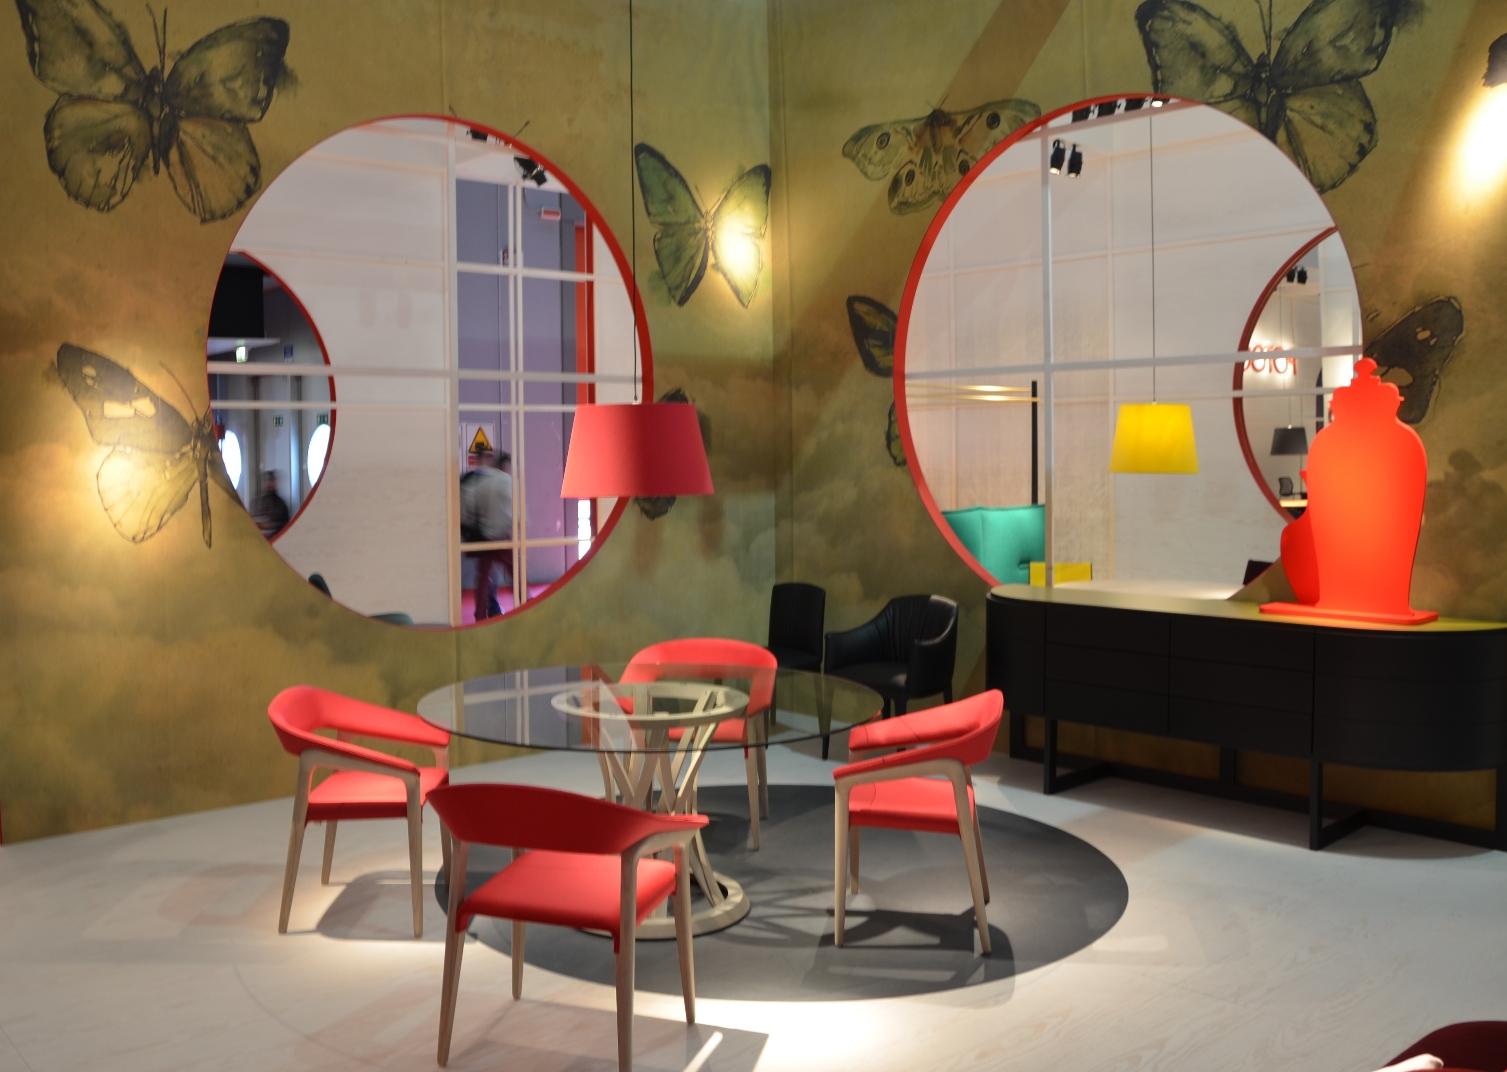 37 potocco isaloni salone del mobile 2015 milan targi meblowe w mediolanie interior furniture light fixtures design tendencies trends review